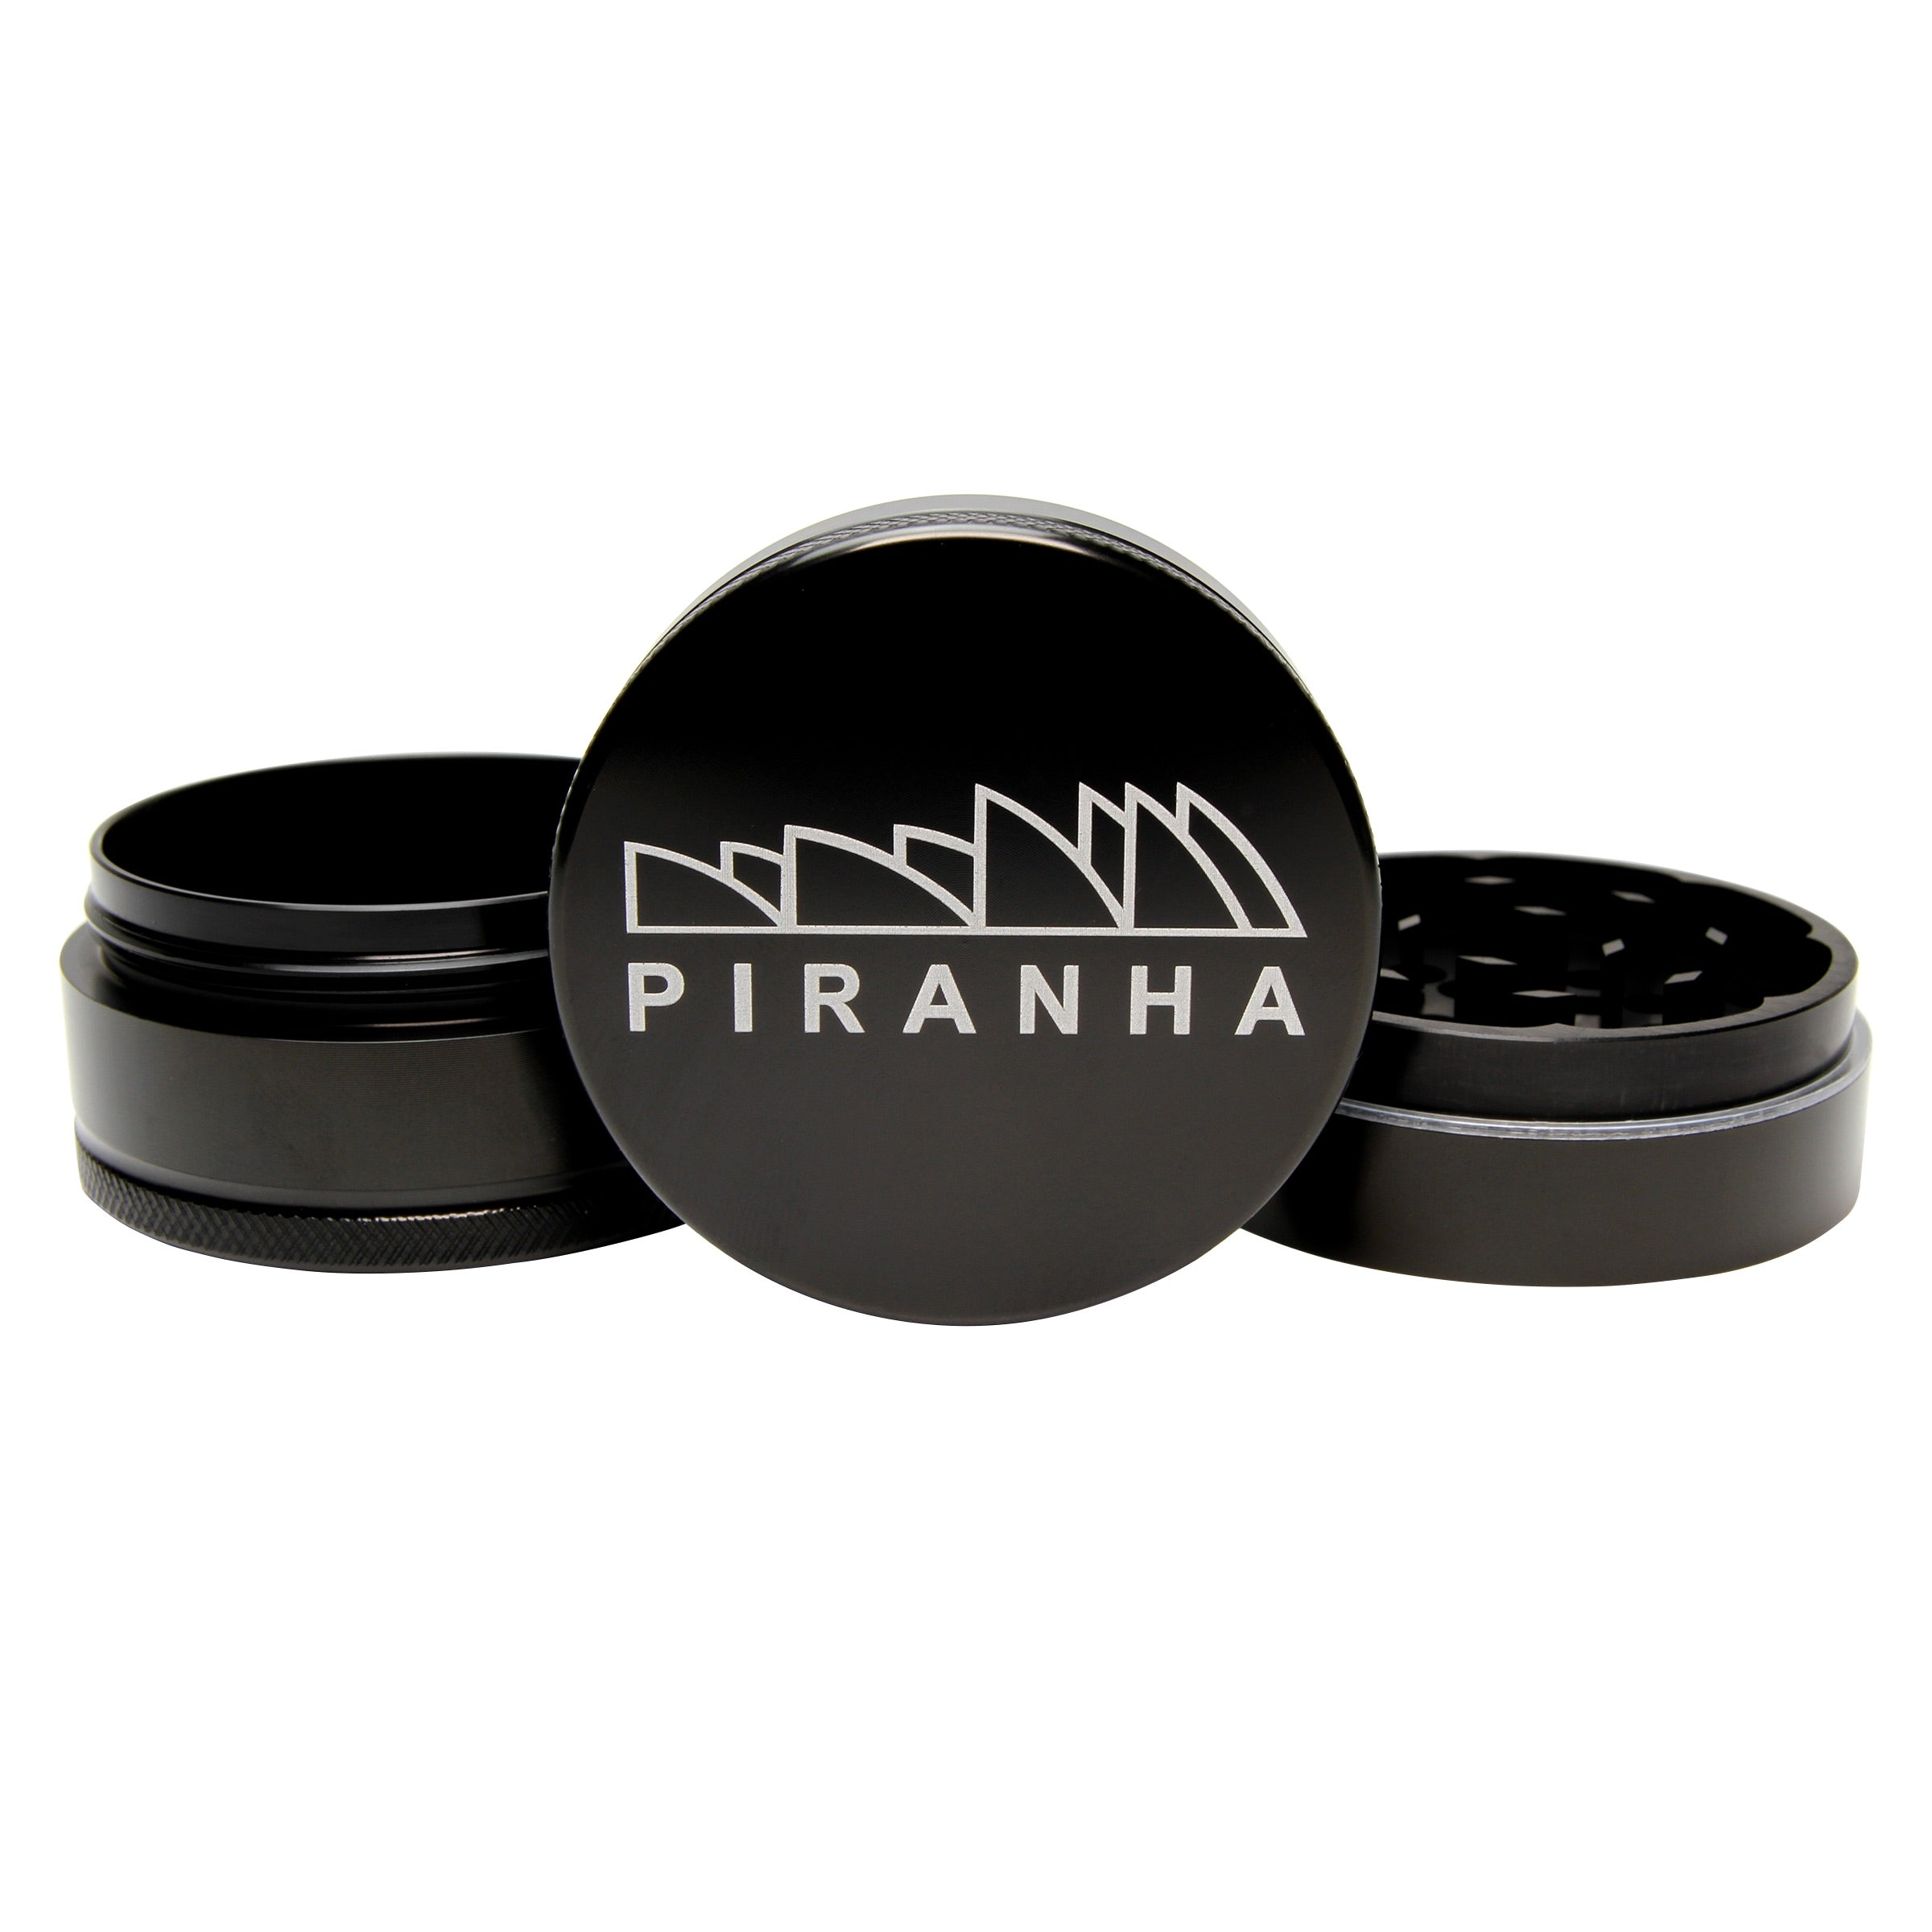 Piranha 3-Piece Grinder With Storage